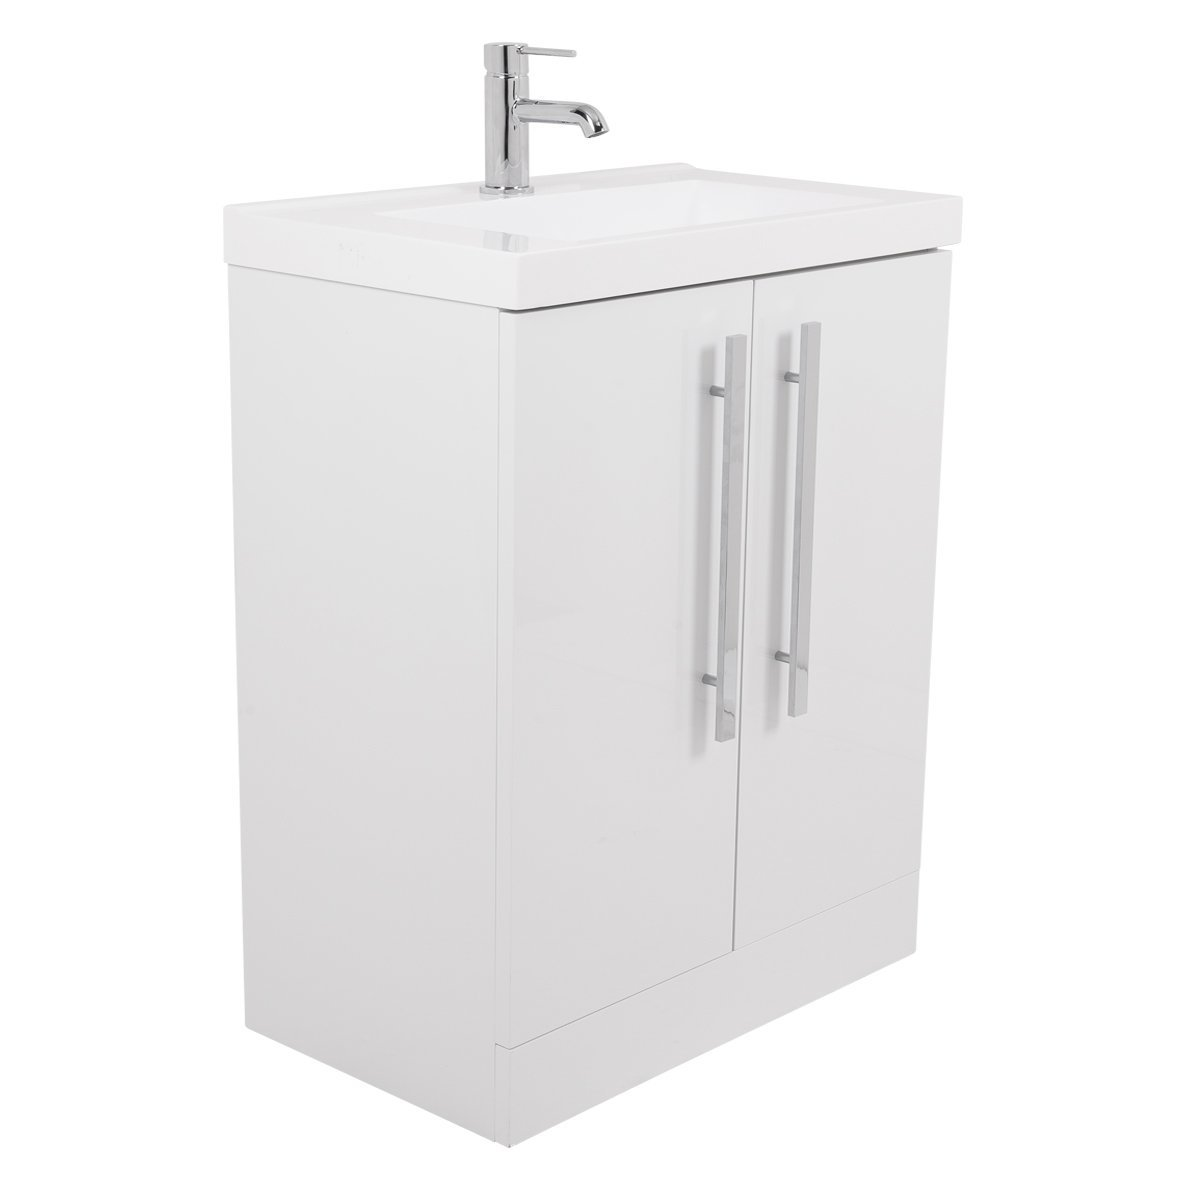 Aquariss Contemporary 600mm Floor Standing Bathroom Vanity Unit & Basin with FREE Mirror- White